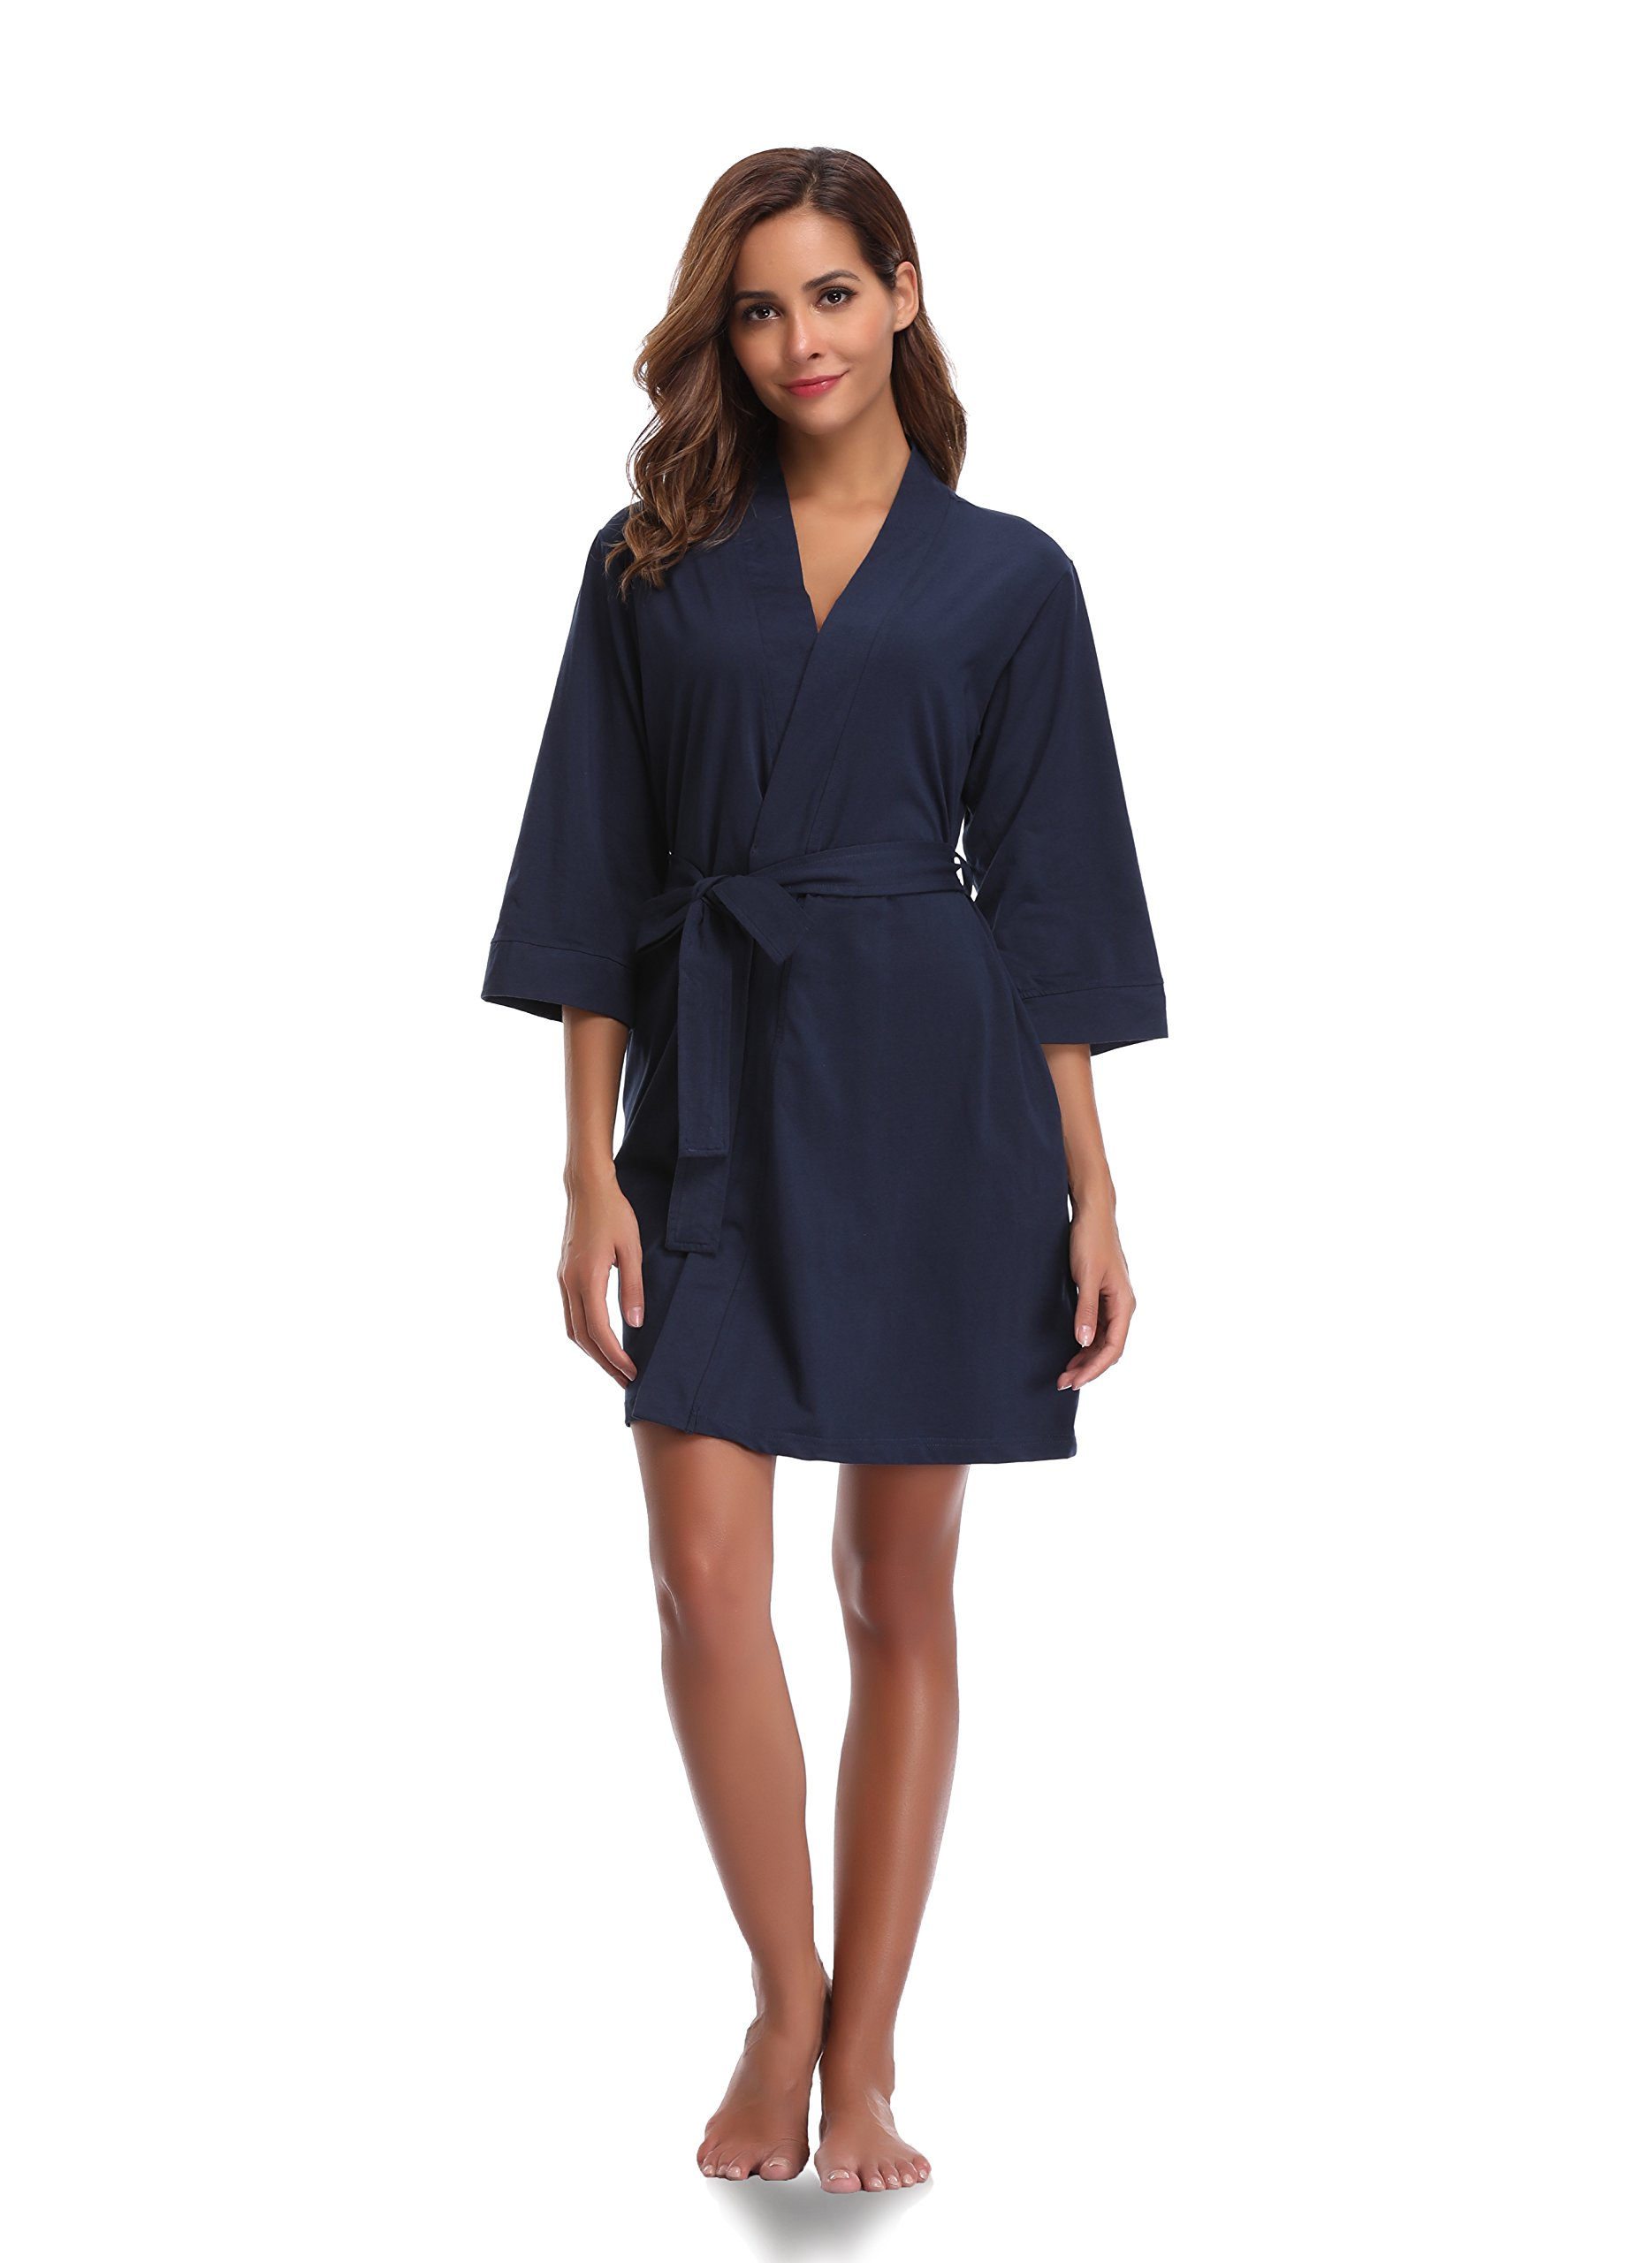 Luvrobes Women's Cotton Knit Kimono Robe (M, Navy)